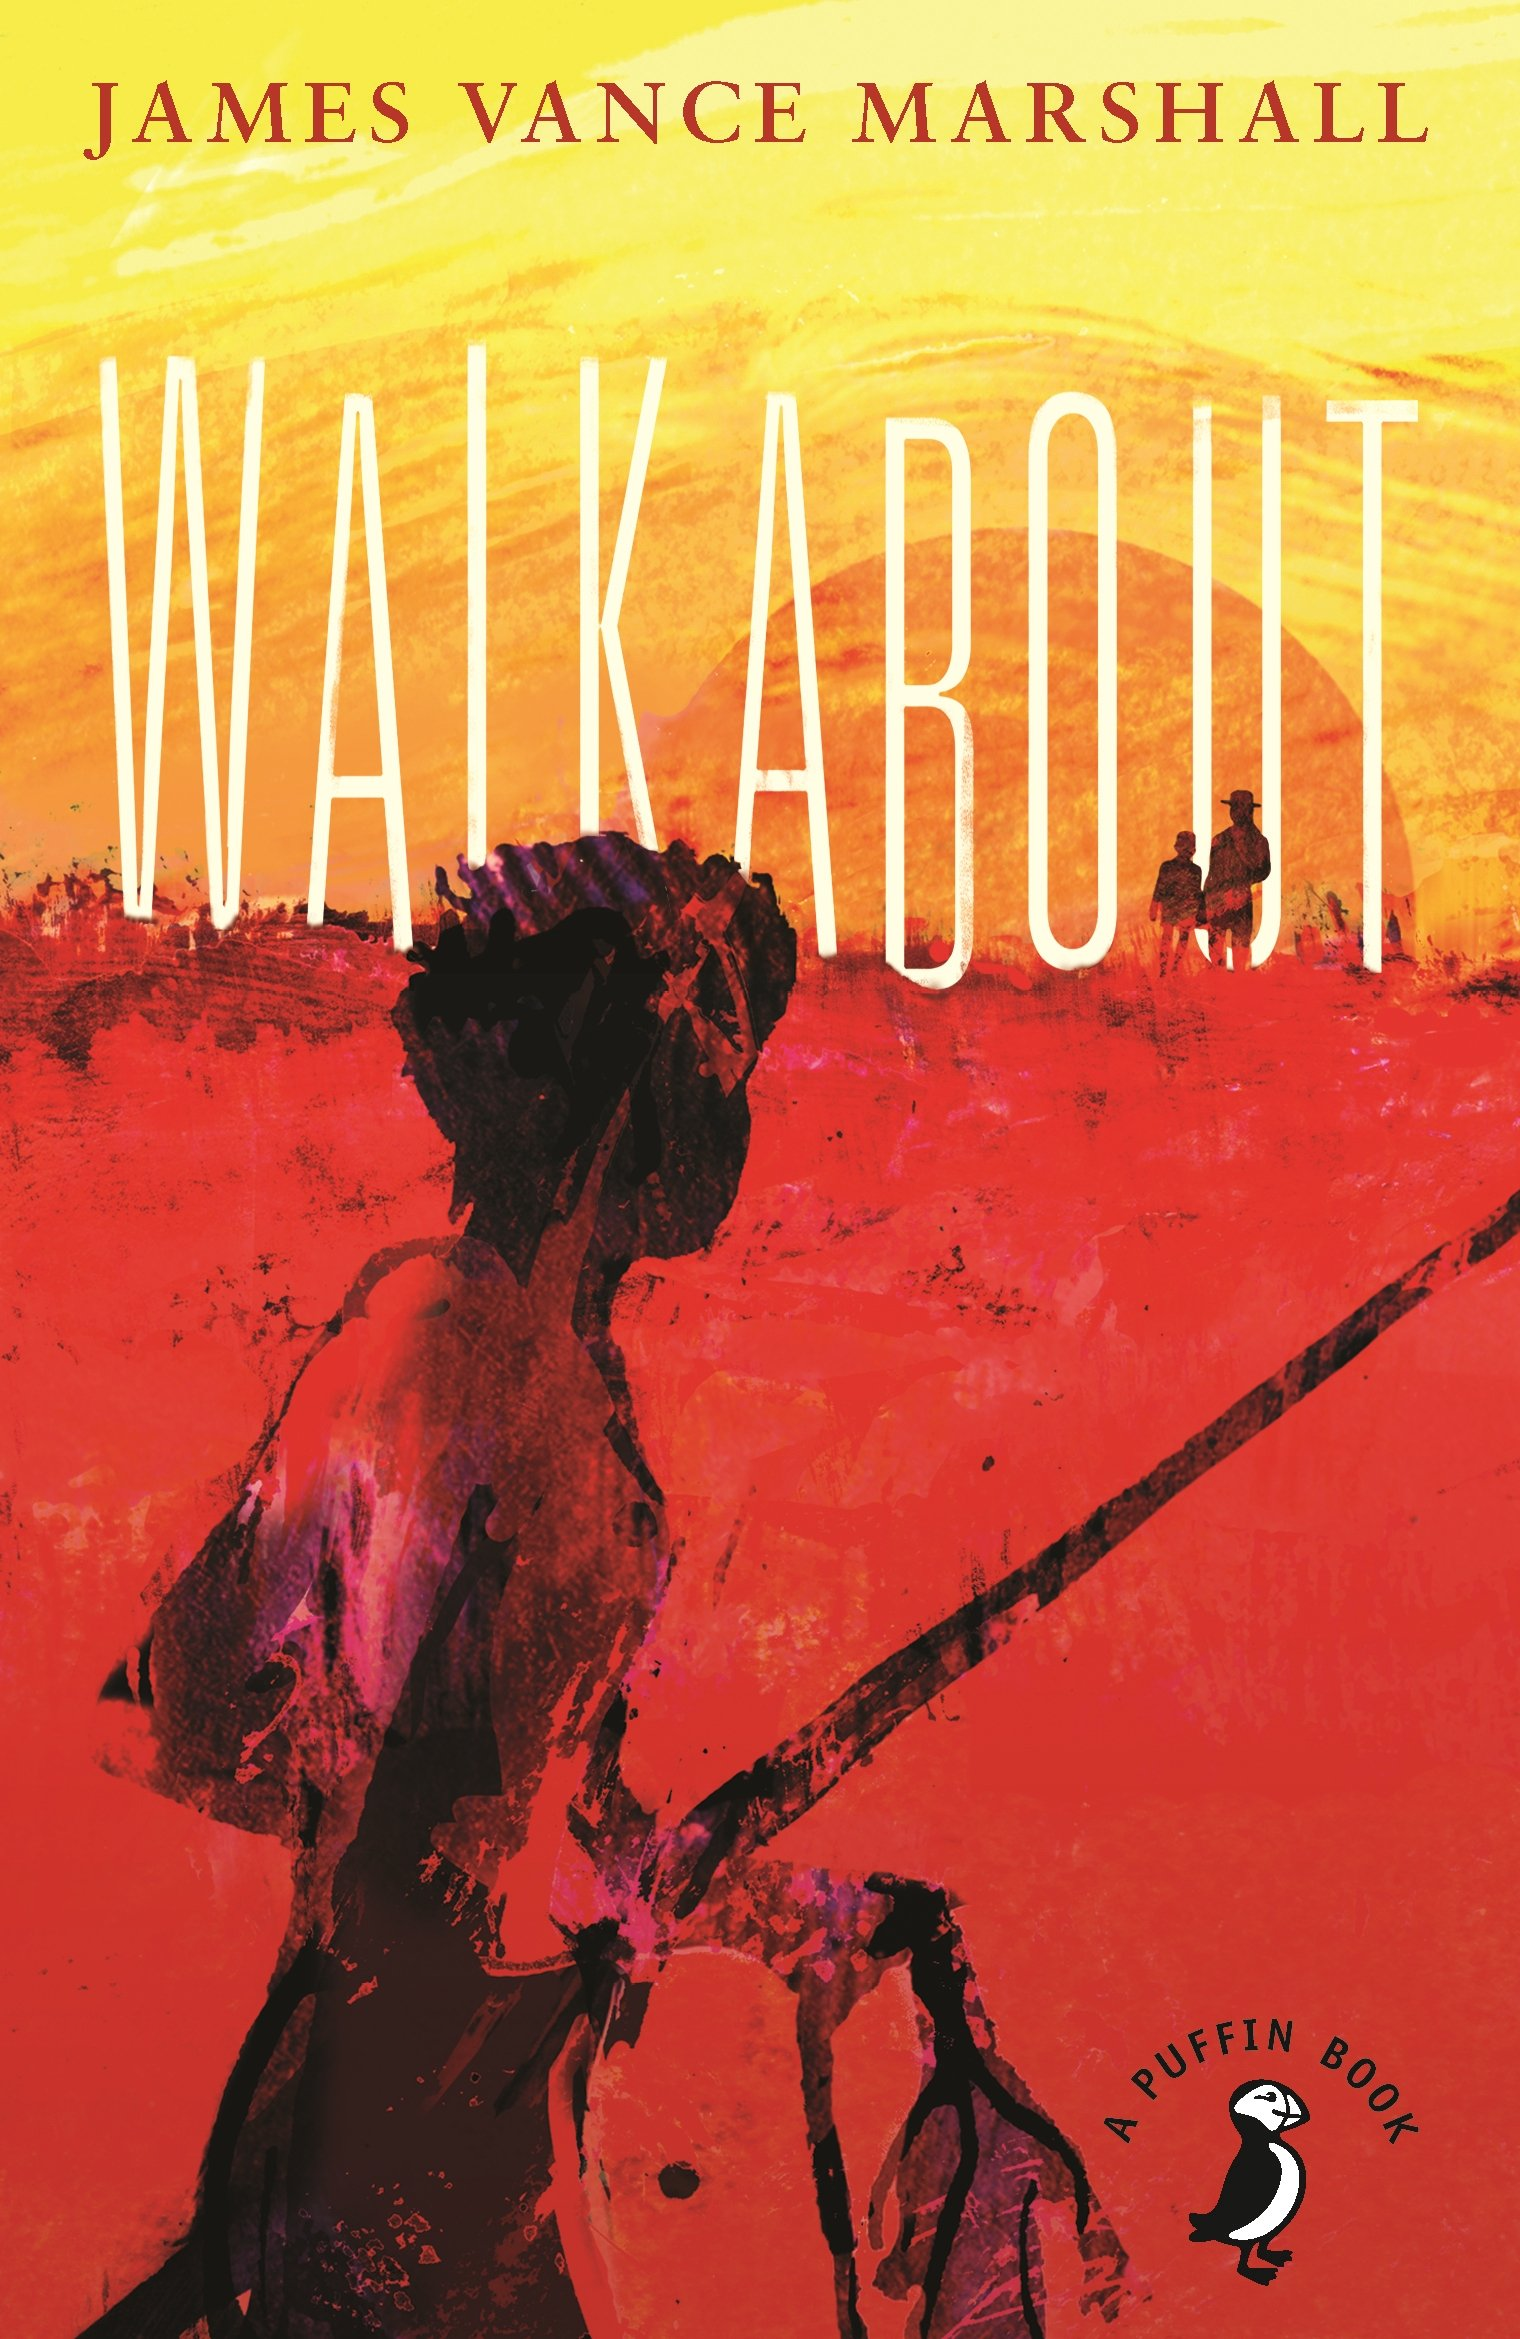 Walkabout (Puffin Modern Classics) (English Edition)